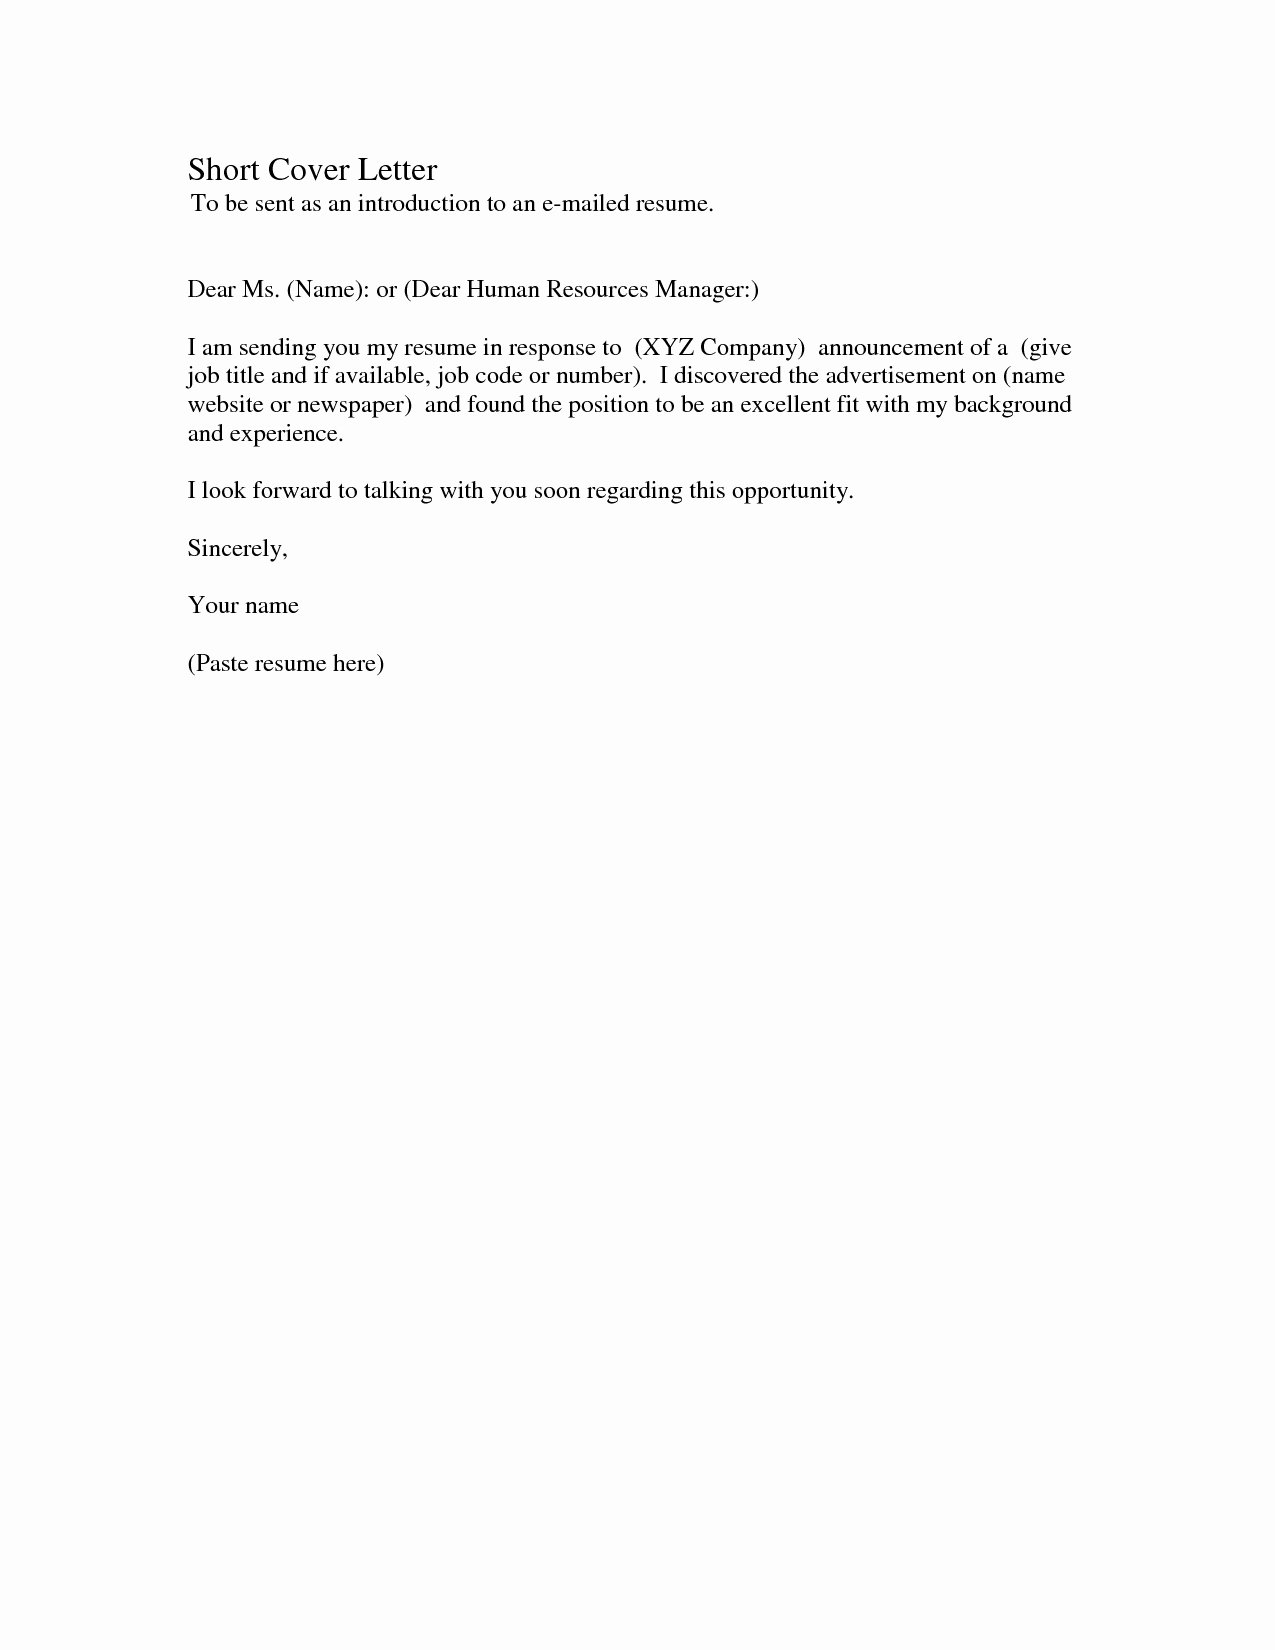 Email Resume Cover Letter Template